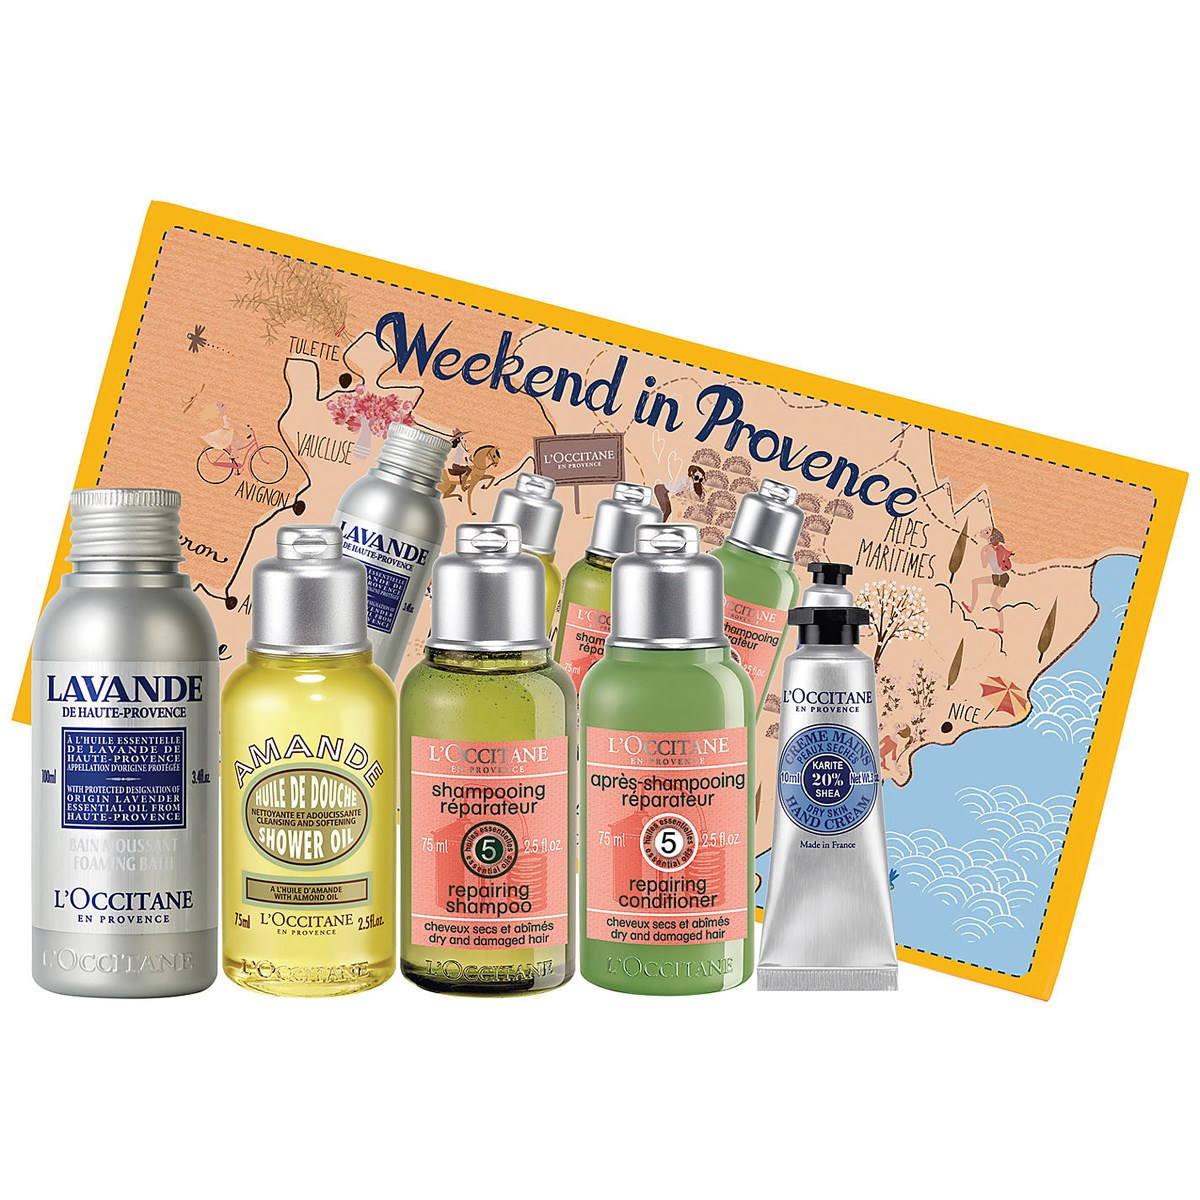 L'Occitane Weekend in Provence Gift Set